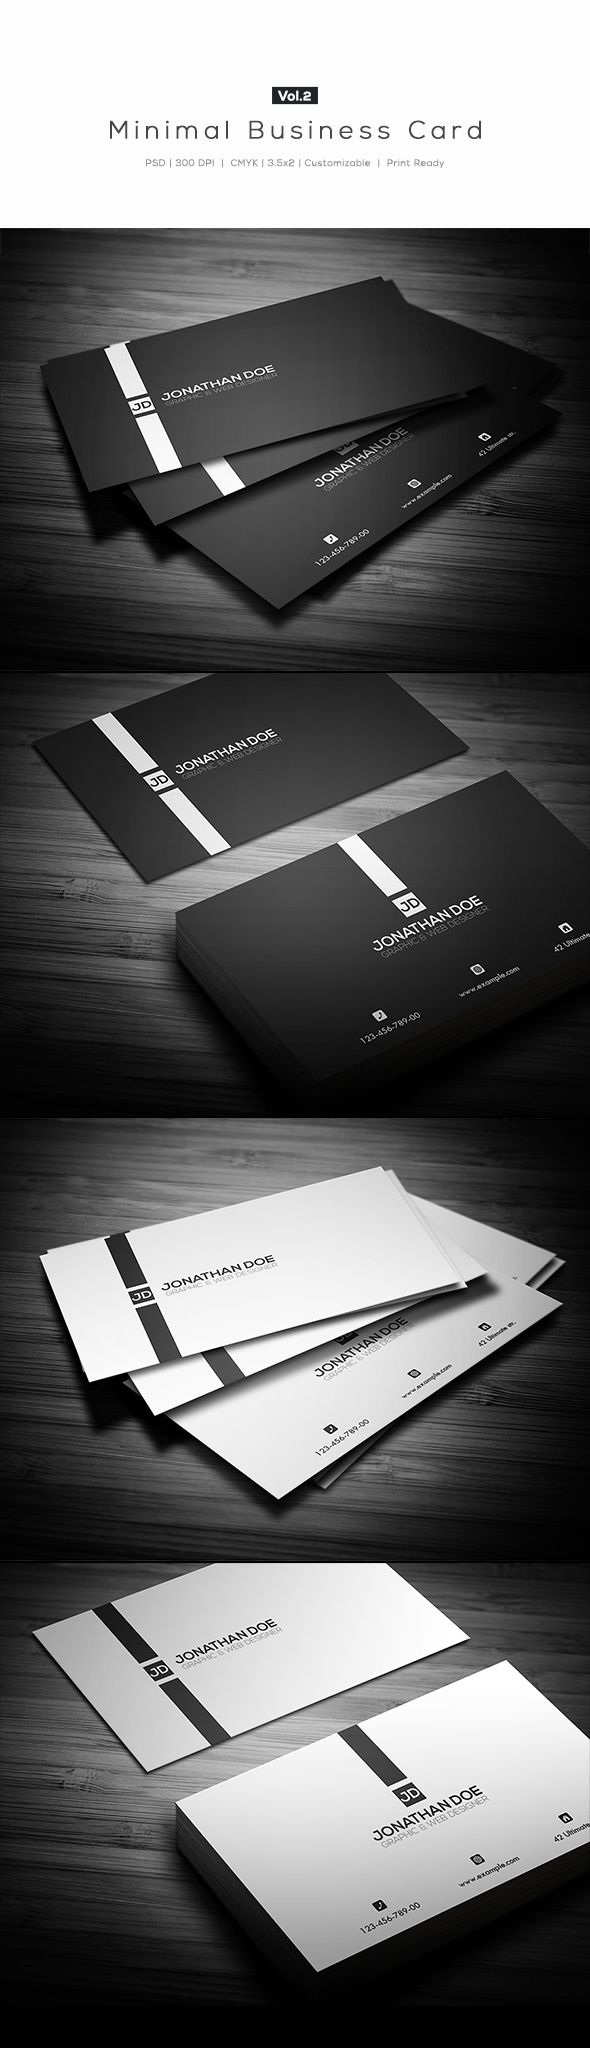 28 best business card inspiration images on pinterest creative minimal business card vol22 different colors white blackdetails easy colourmoves